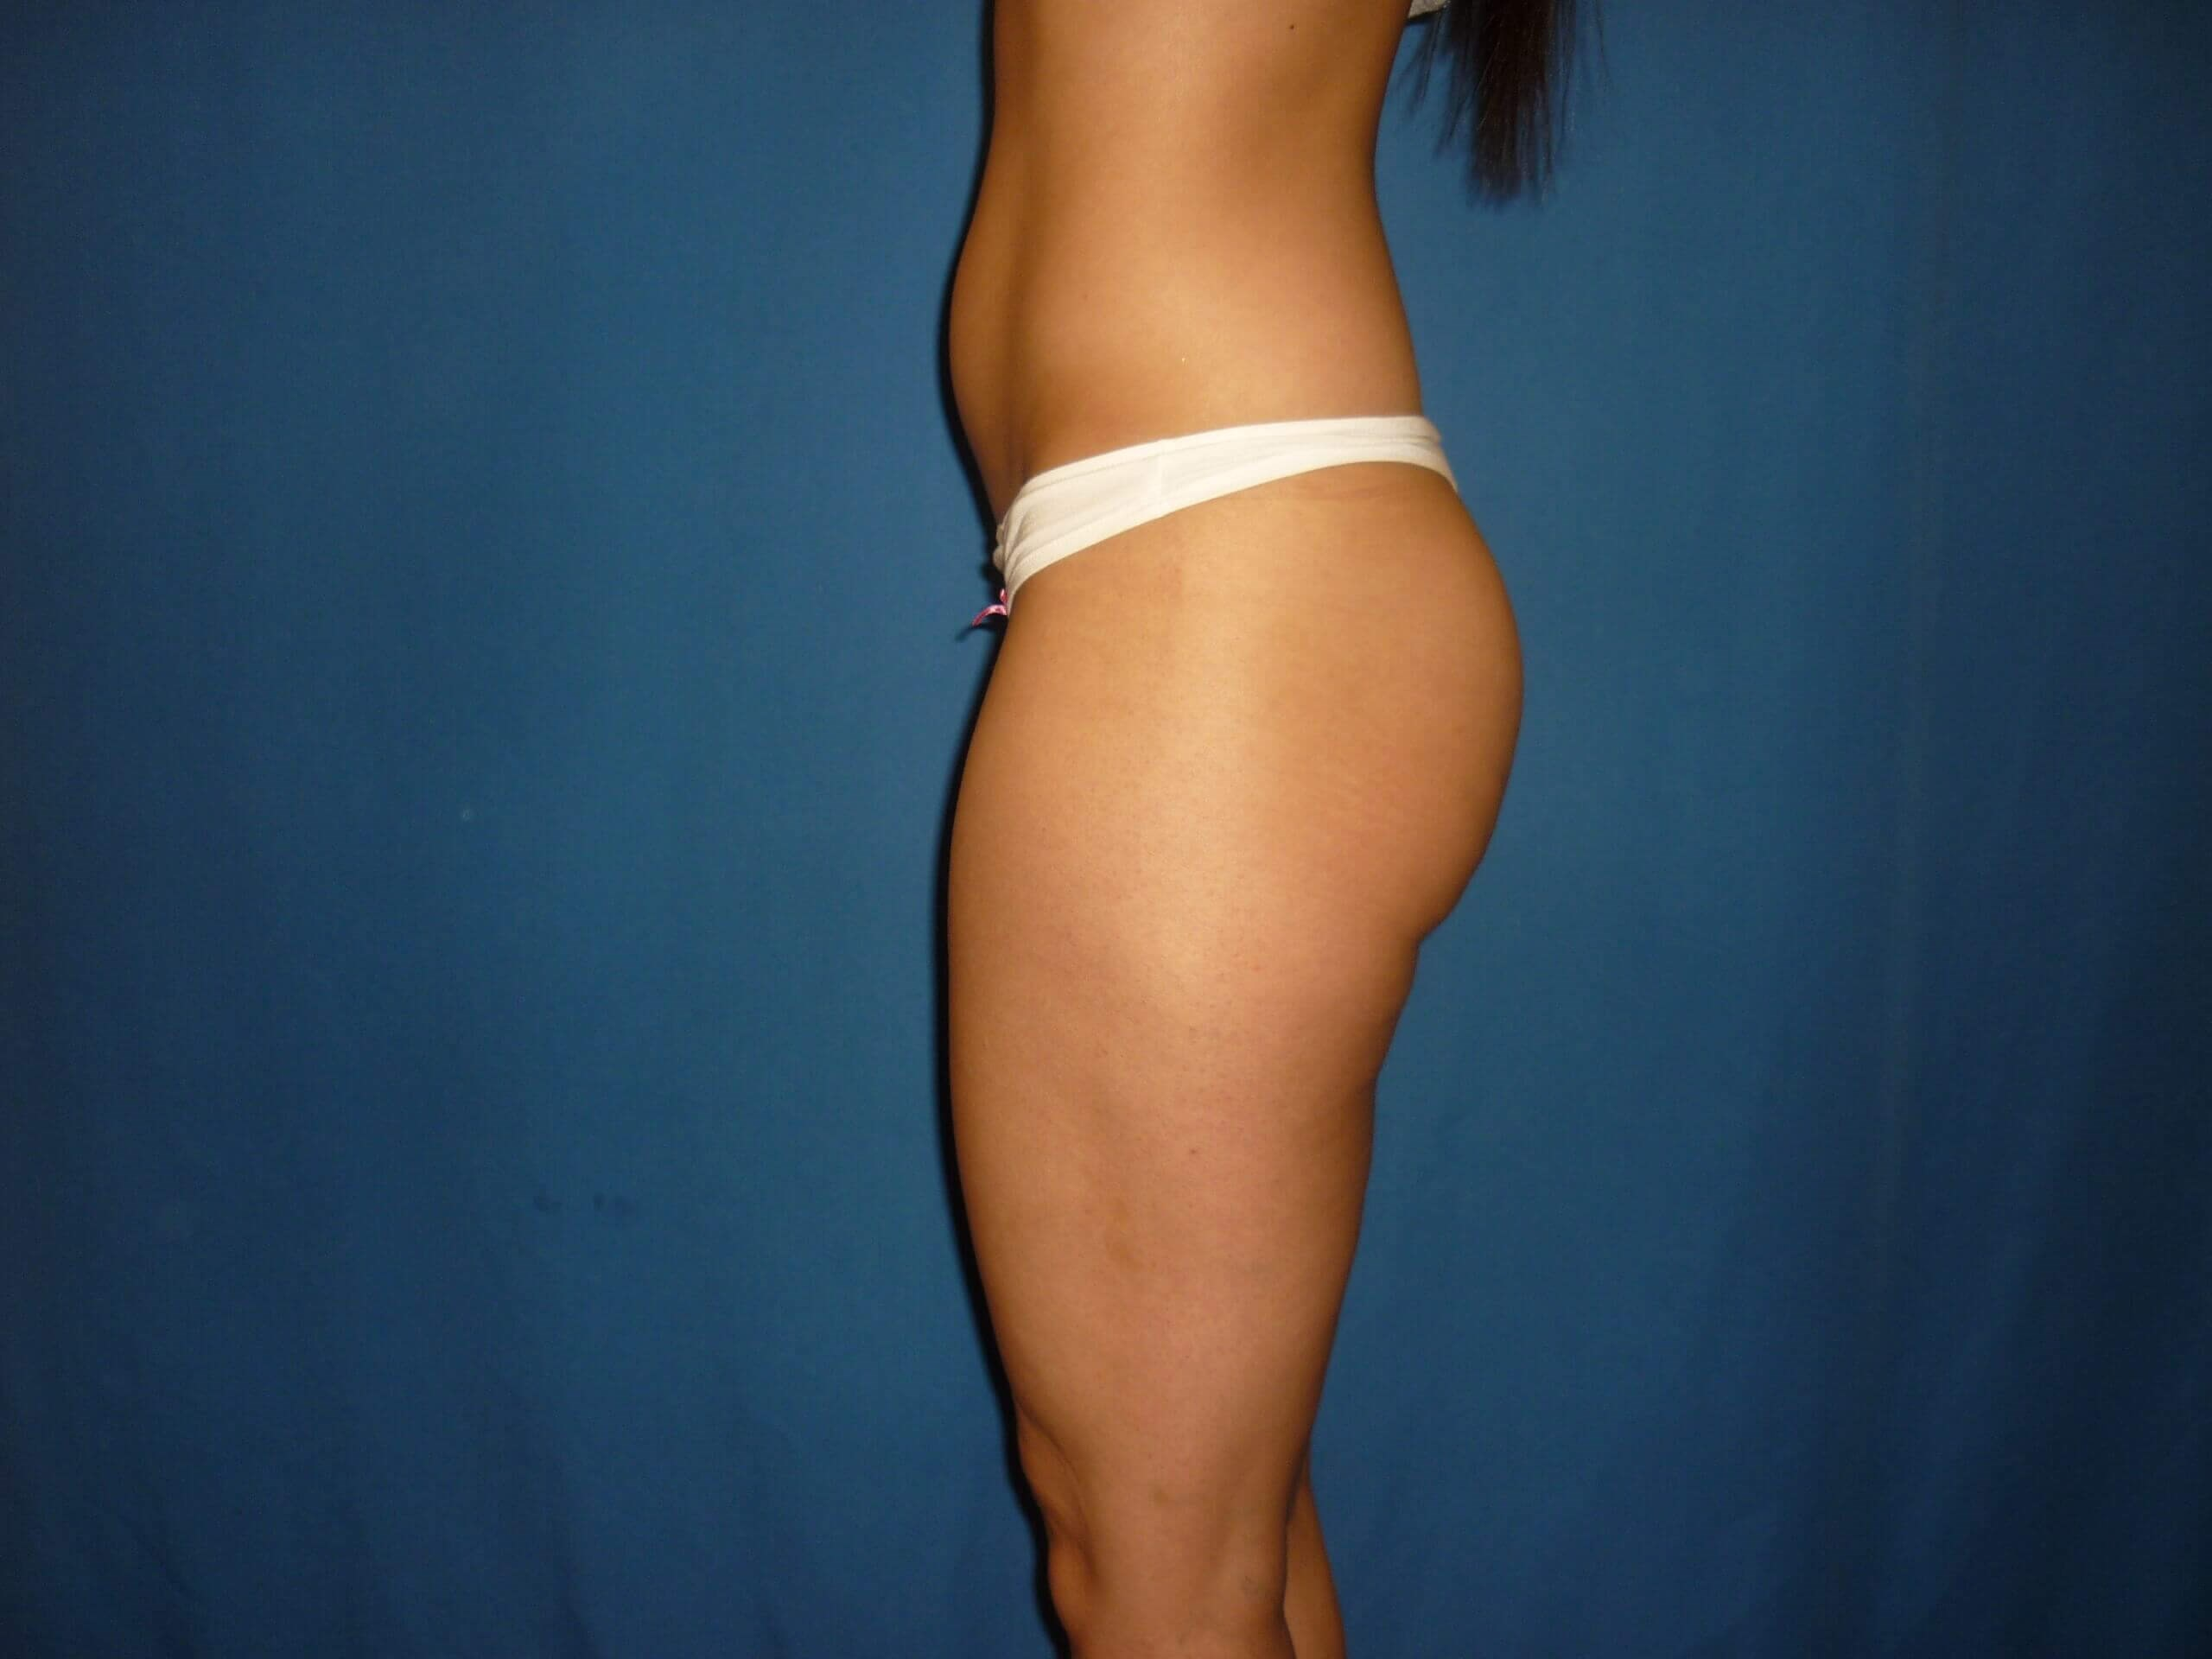 Butt implants - Denver - Shah Before